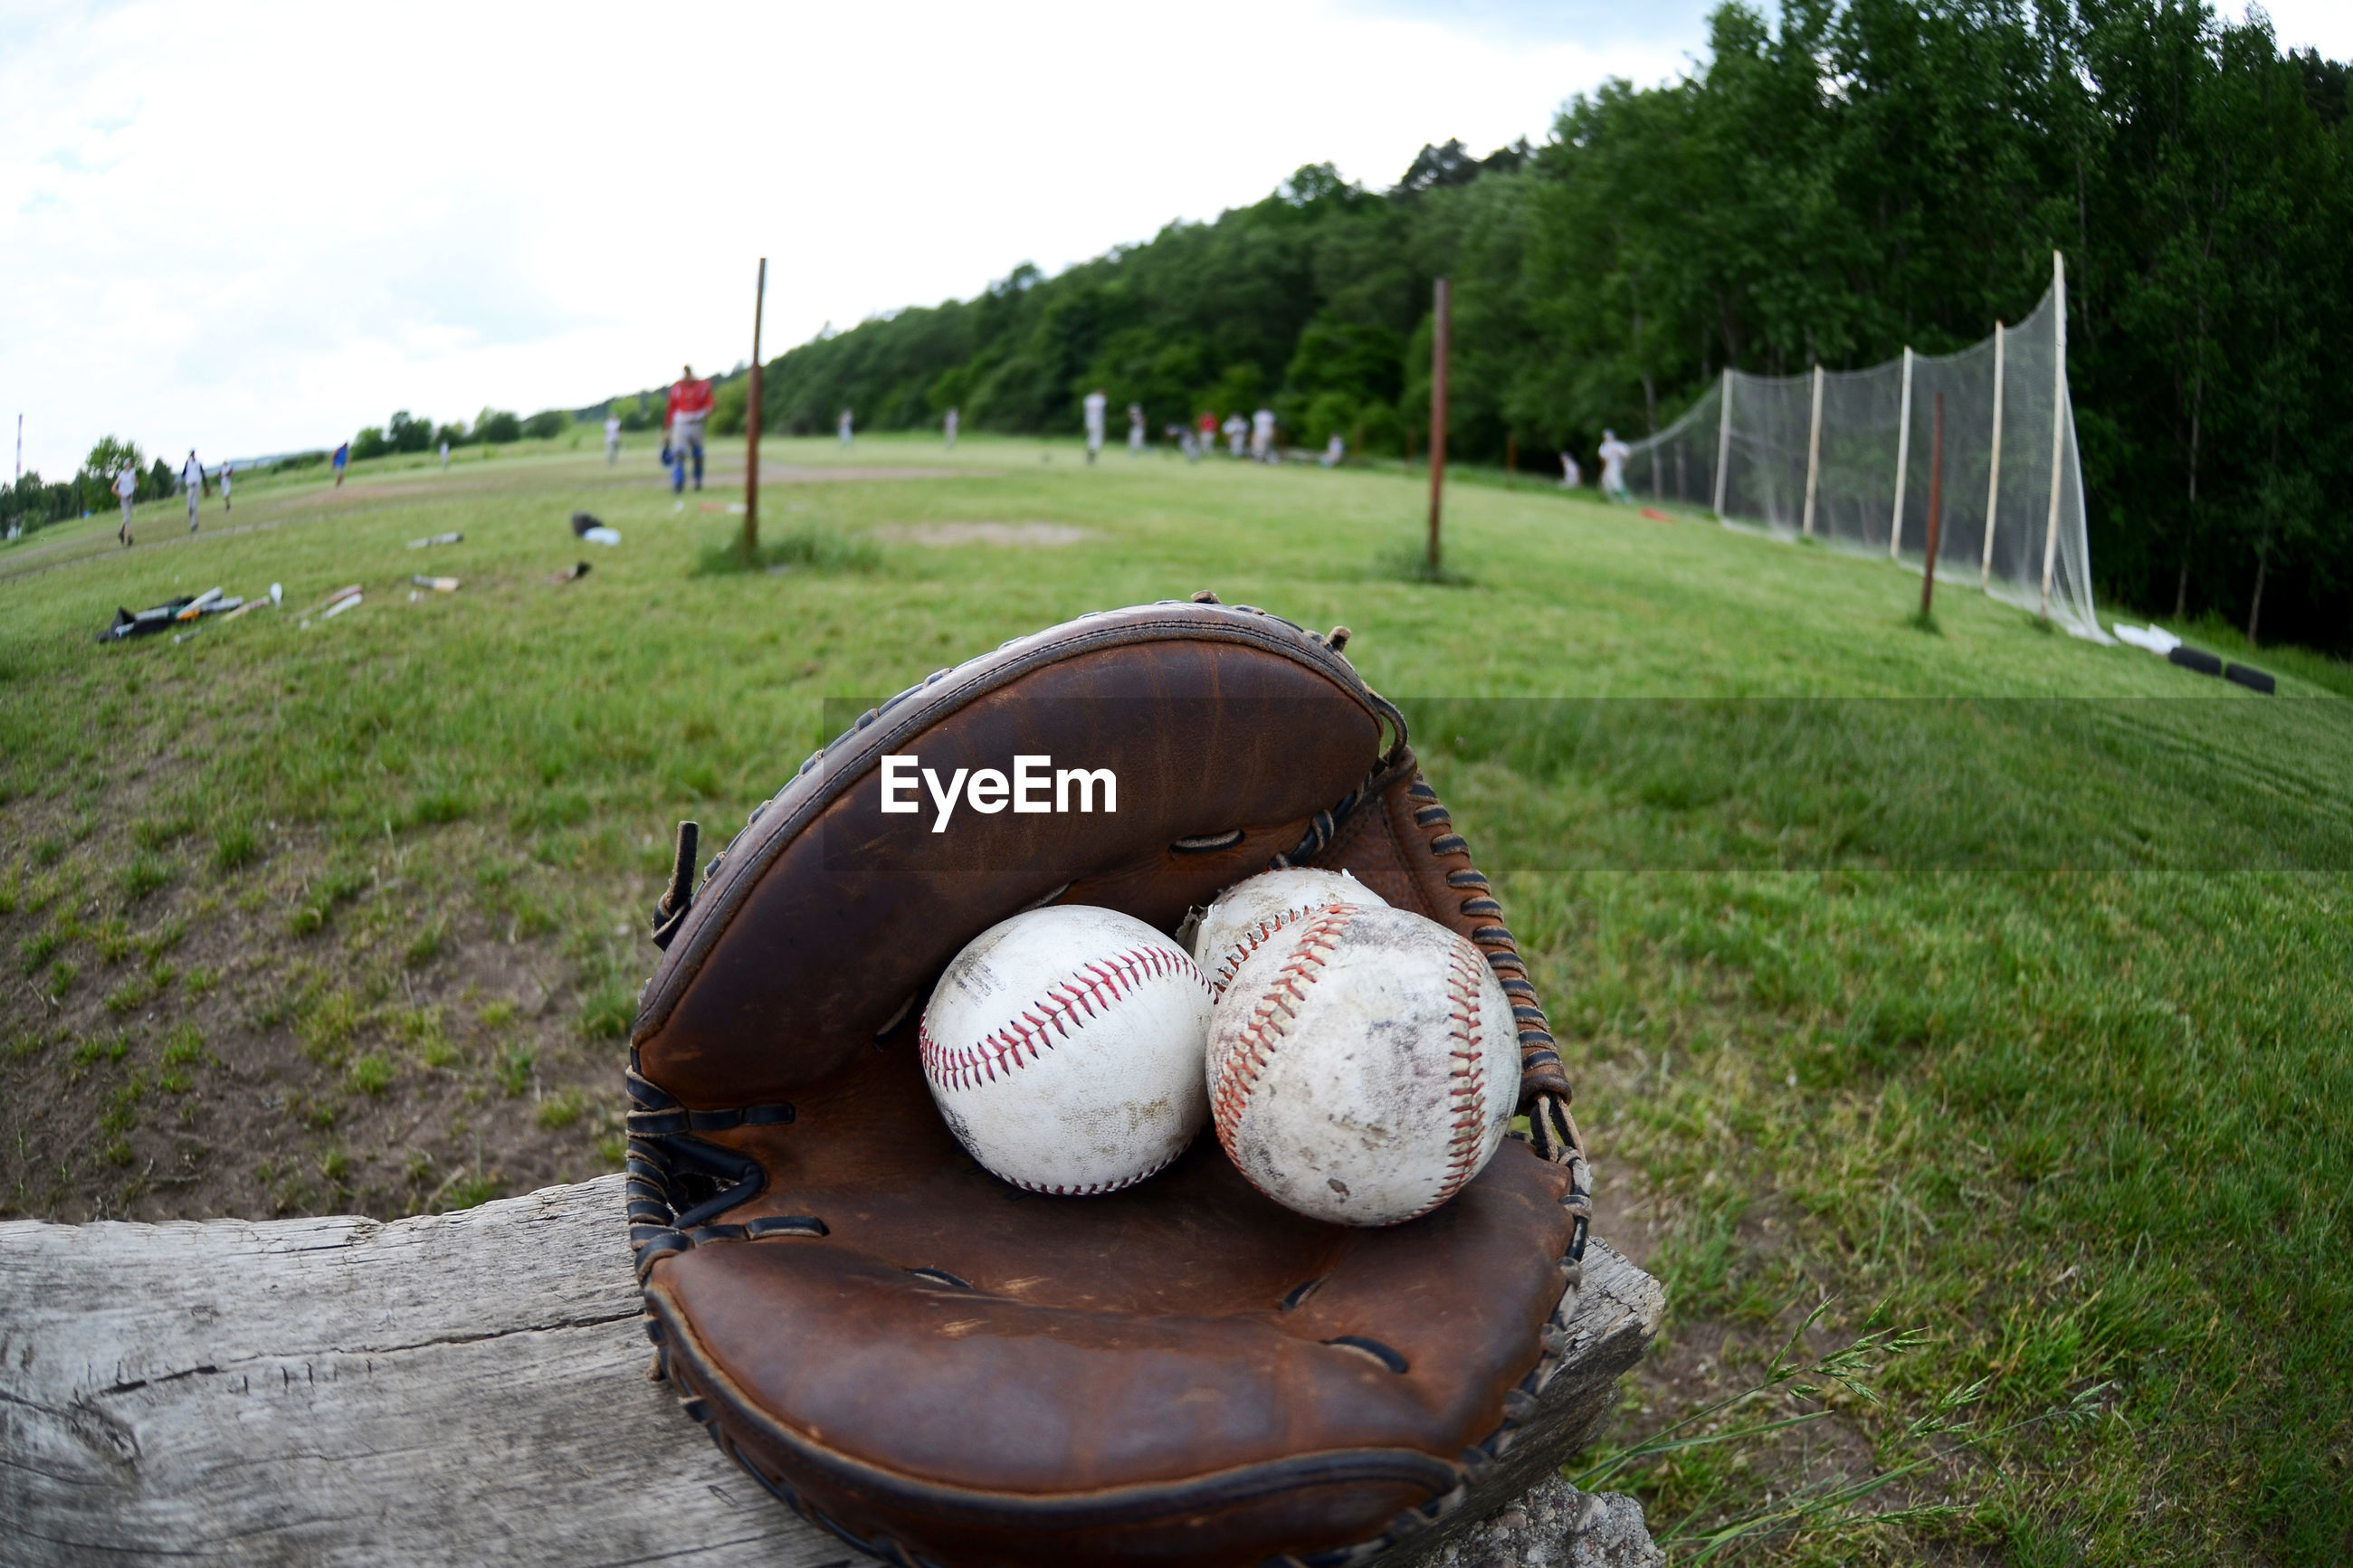 Close-up of baseball glove and ball on playing field